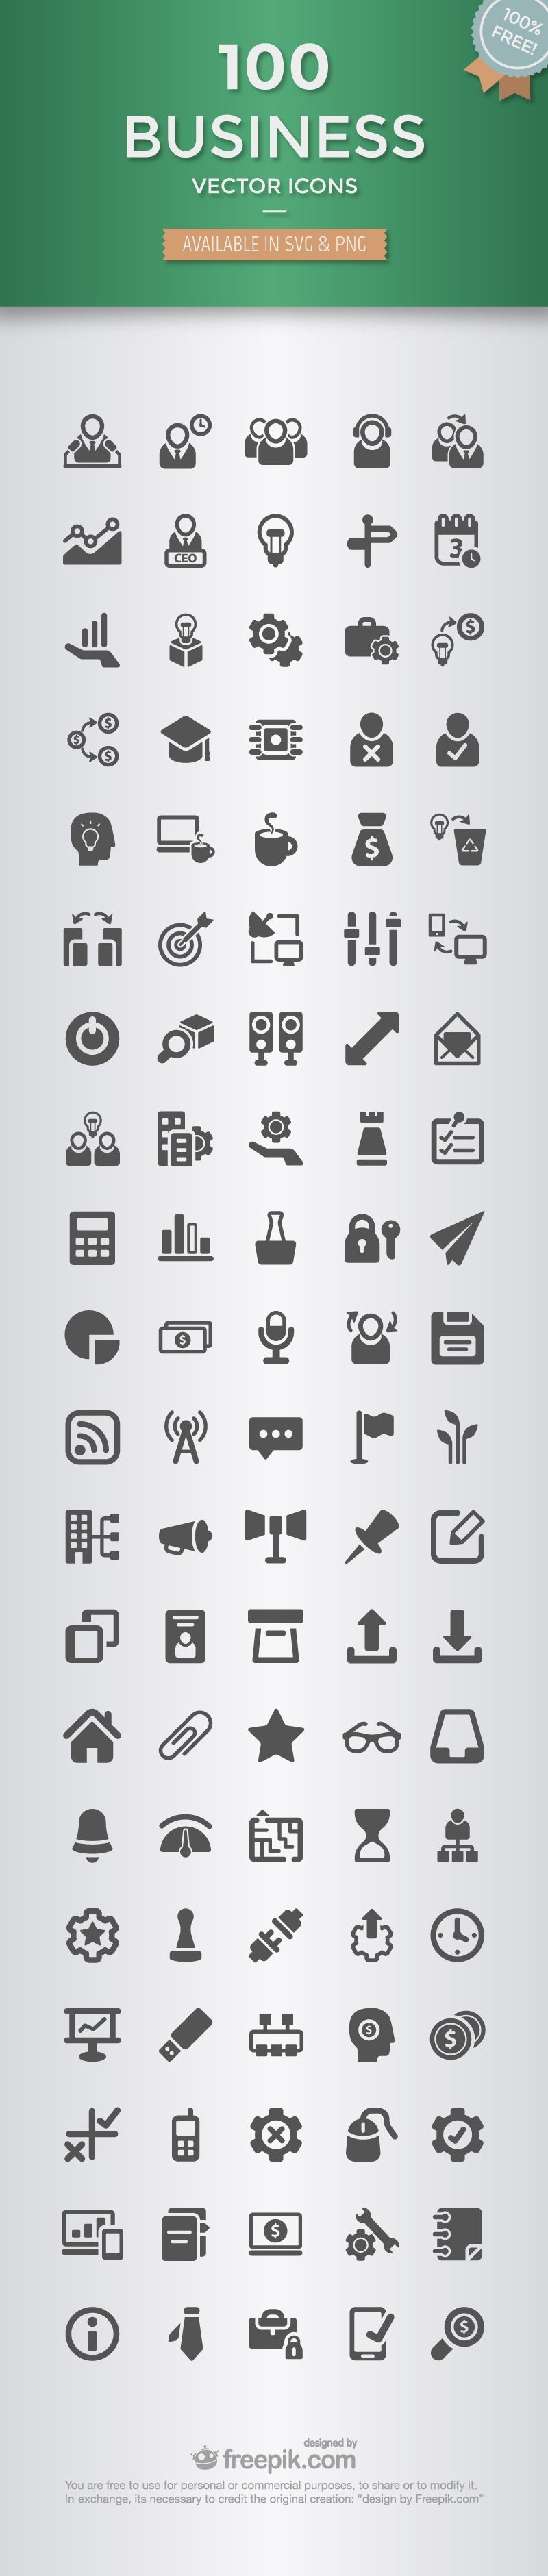 100 Icones Business A Telecharger Gratuitement Business Icon Icon Business Icons Vector